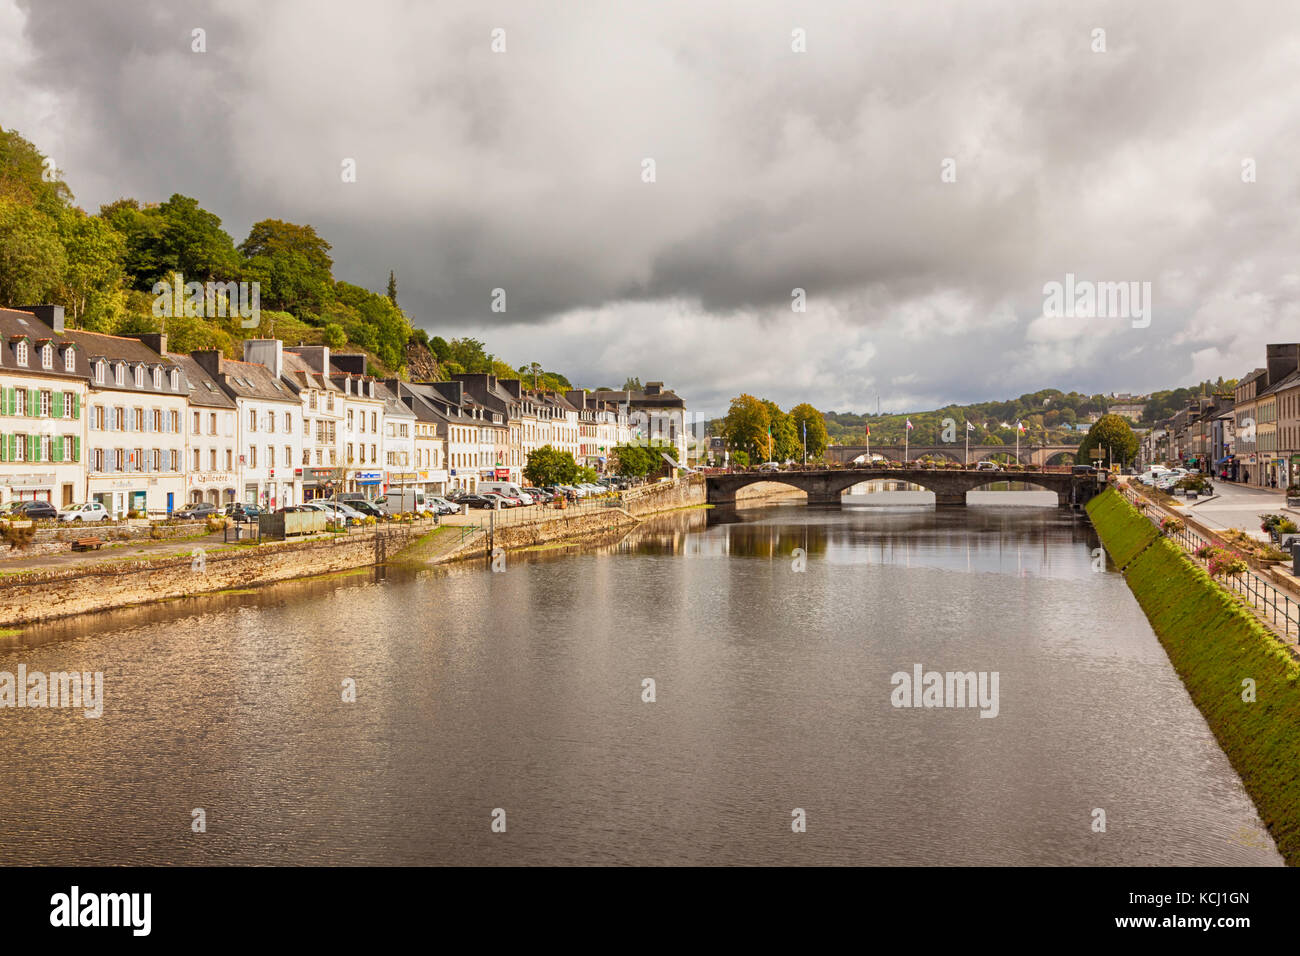 Village of Chateaulin on the canal from Nantes to Brest, Brittany, France - Stock Image